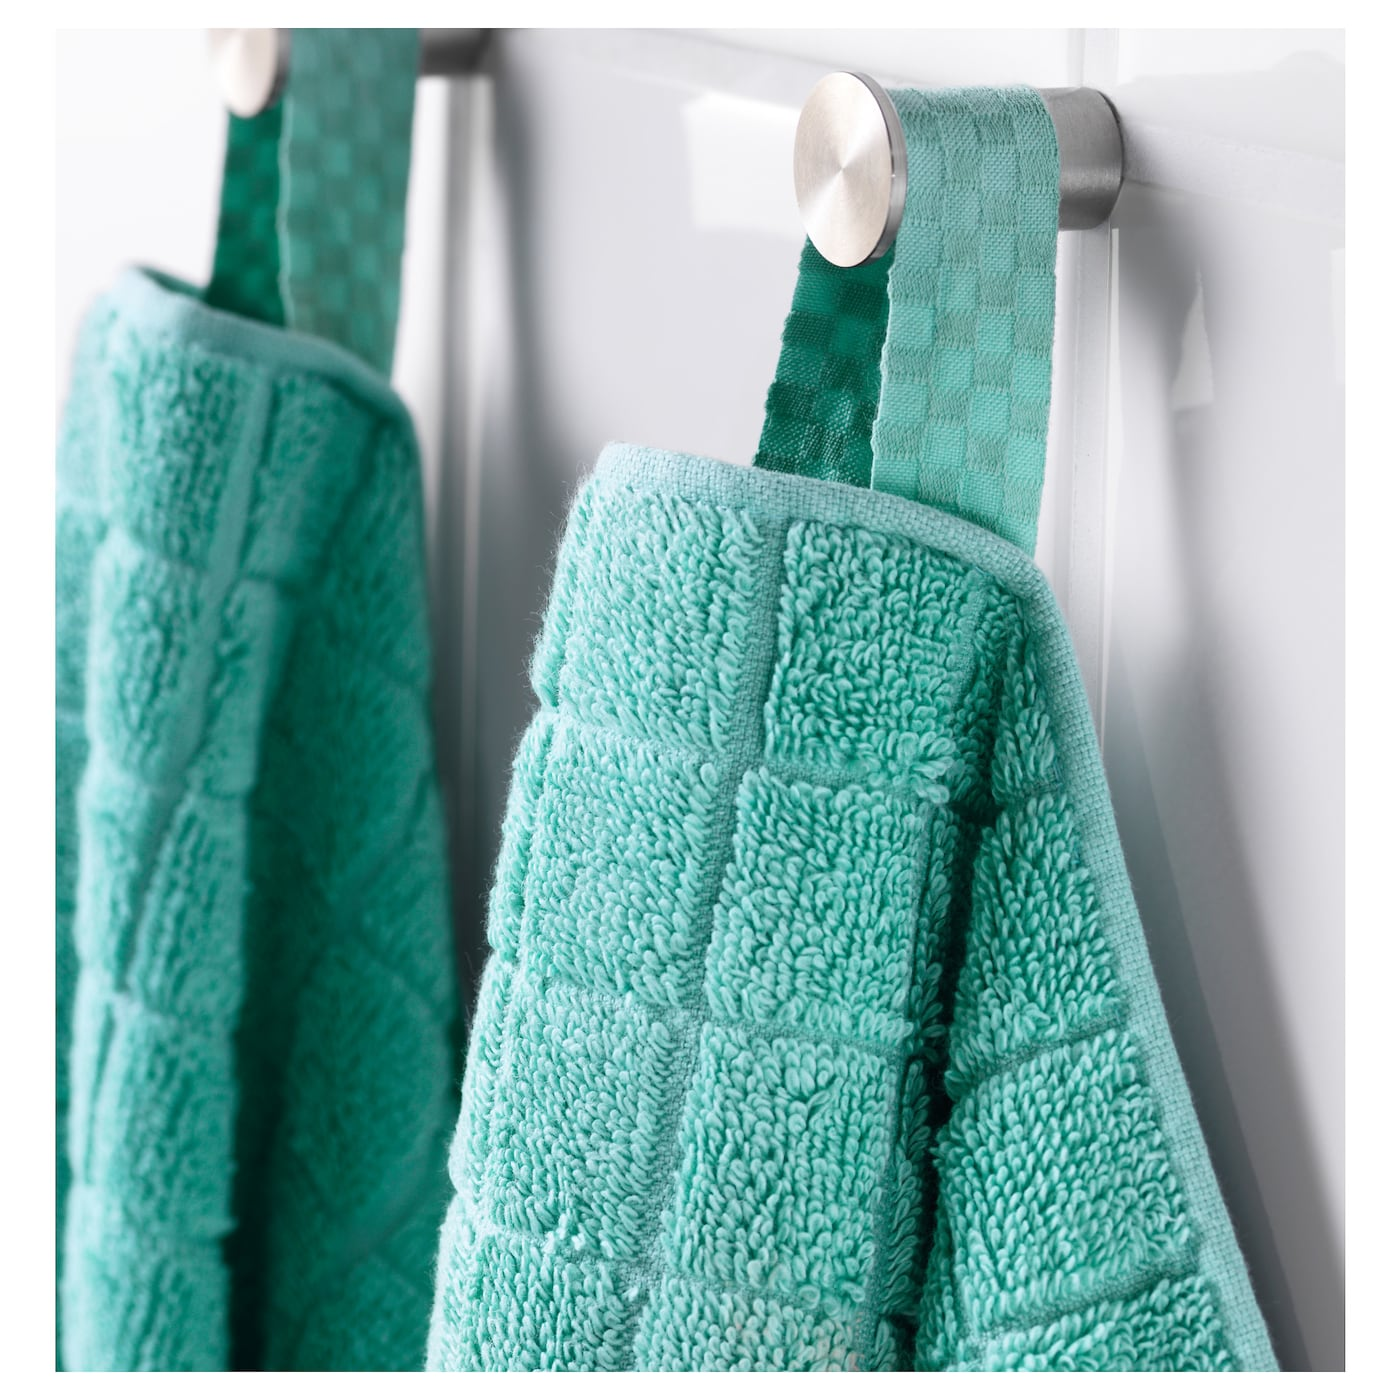 IKEA ÅFJÄRDEN bath towel The long, fine fibres of combed cotton create a soft and durable towel.